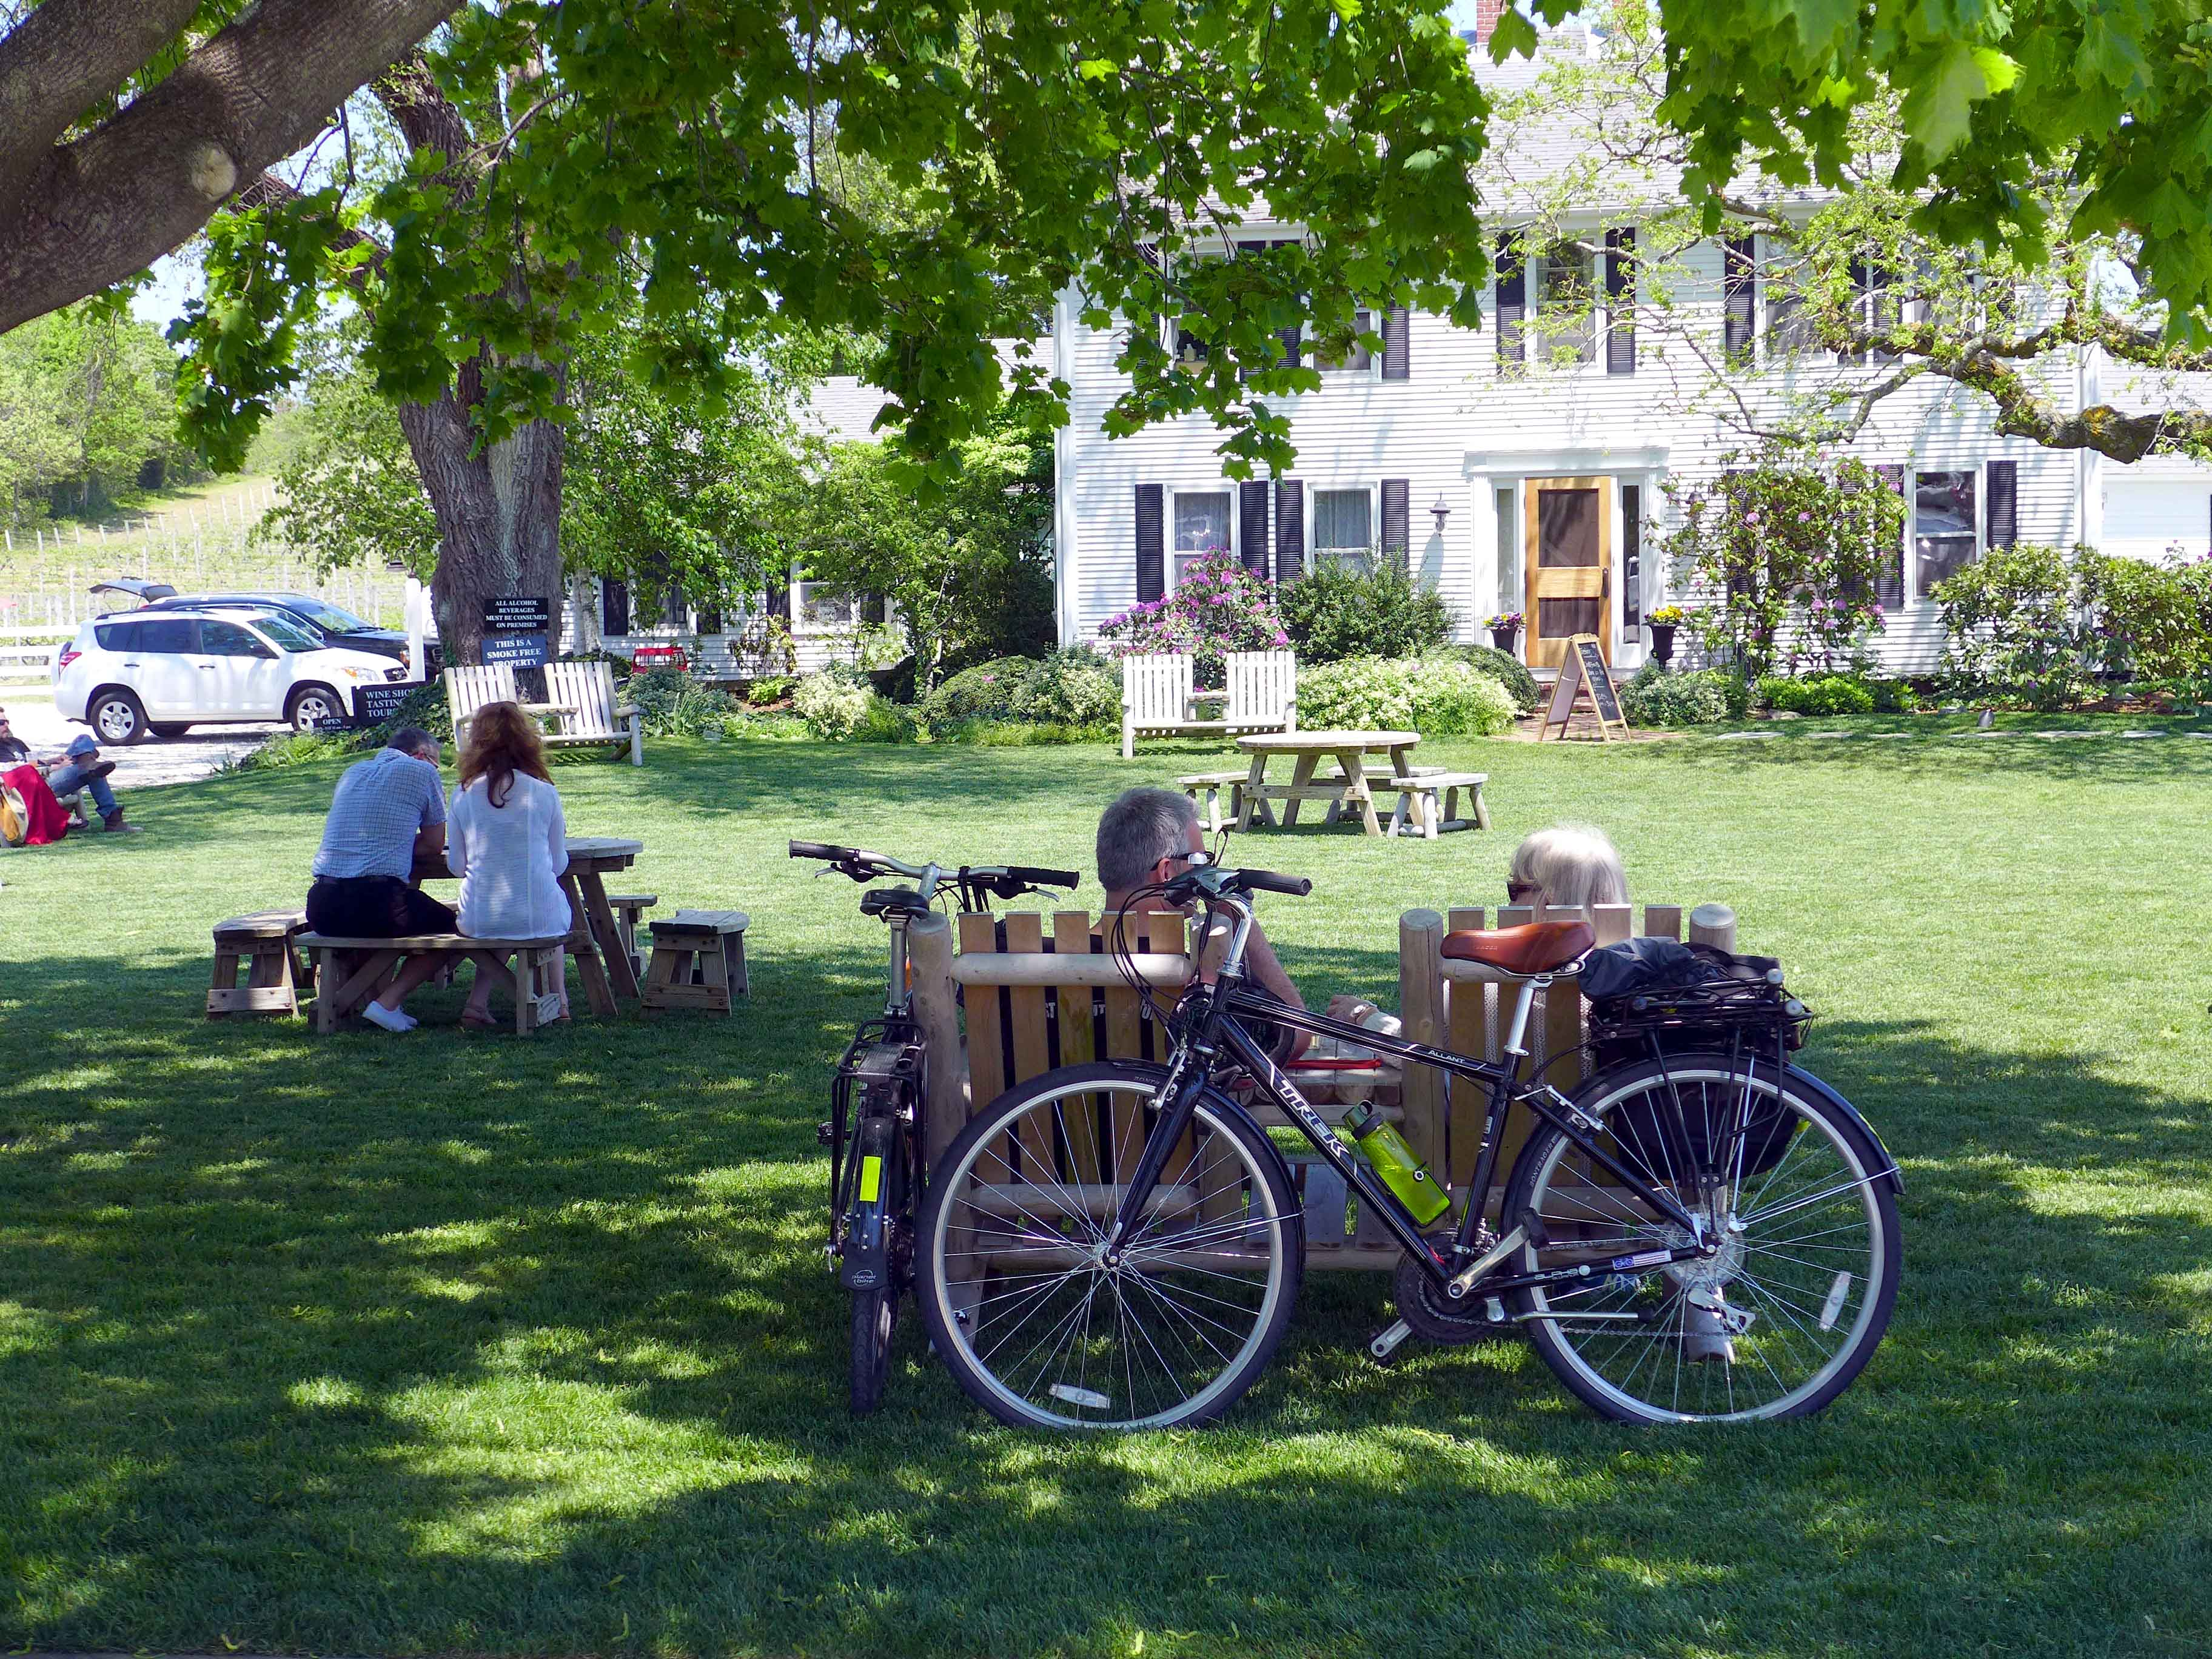 Visitors enjoy relaxing on a sunny afternoon on the lawns of Truro Vineyards.